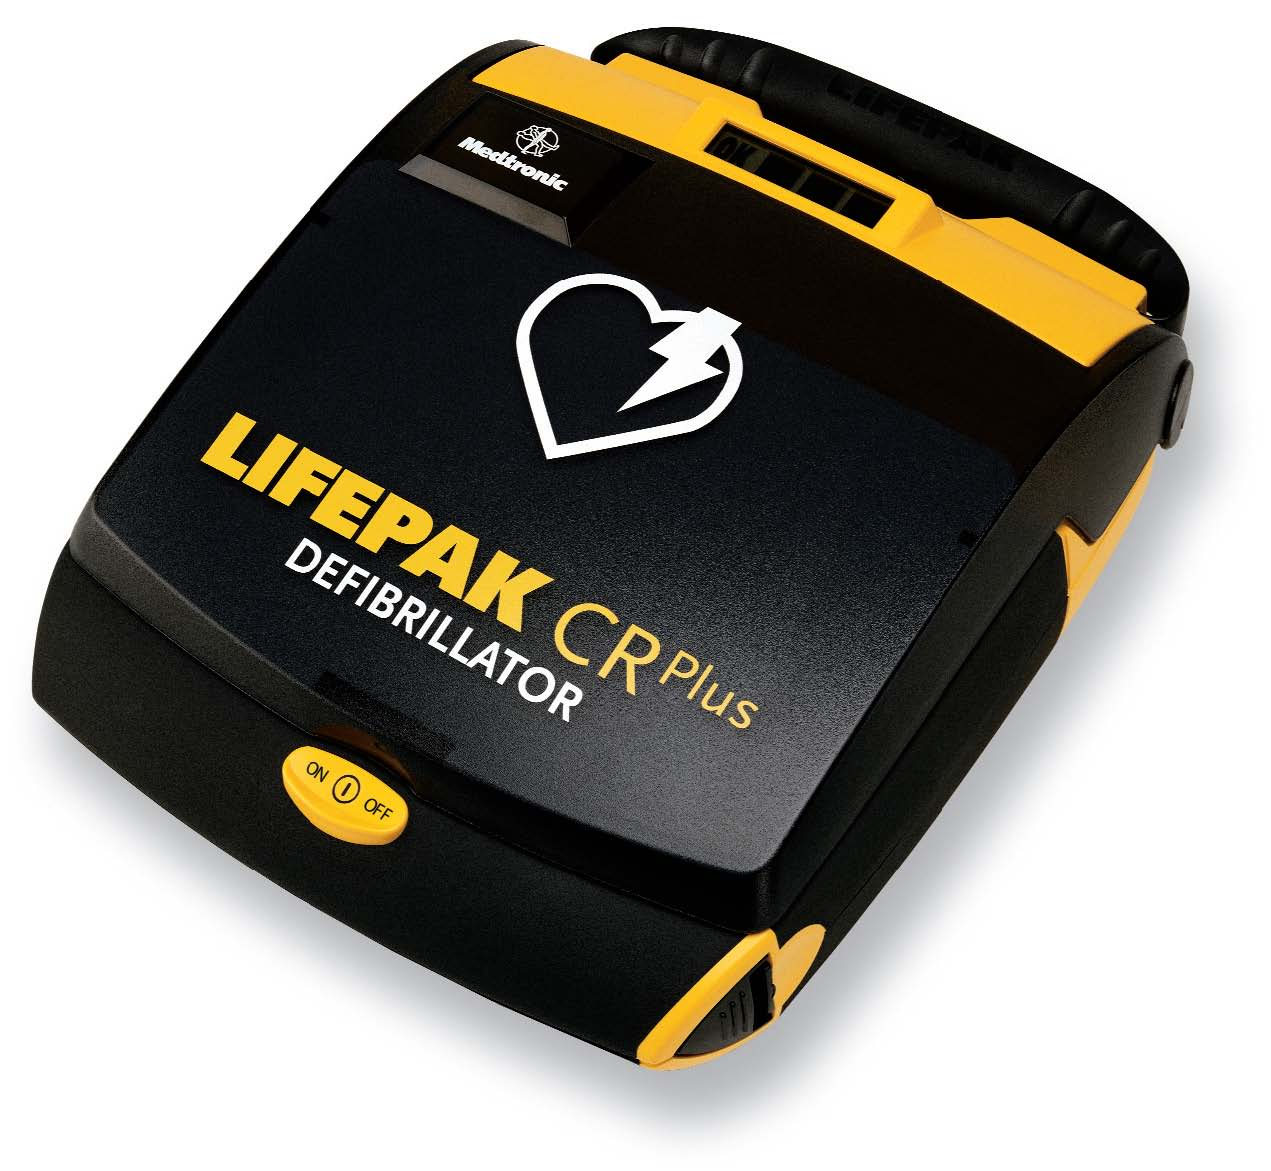 http://myshop.s3-external-3.amazonaws.com/shop3978300.pictures.Lifepak_cr_plus_groot.jpg